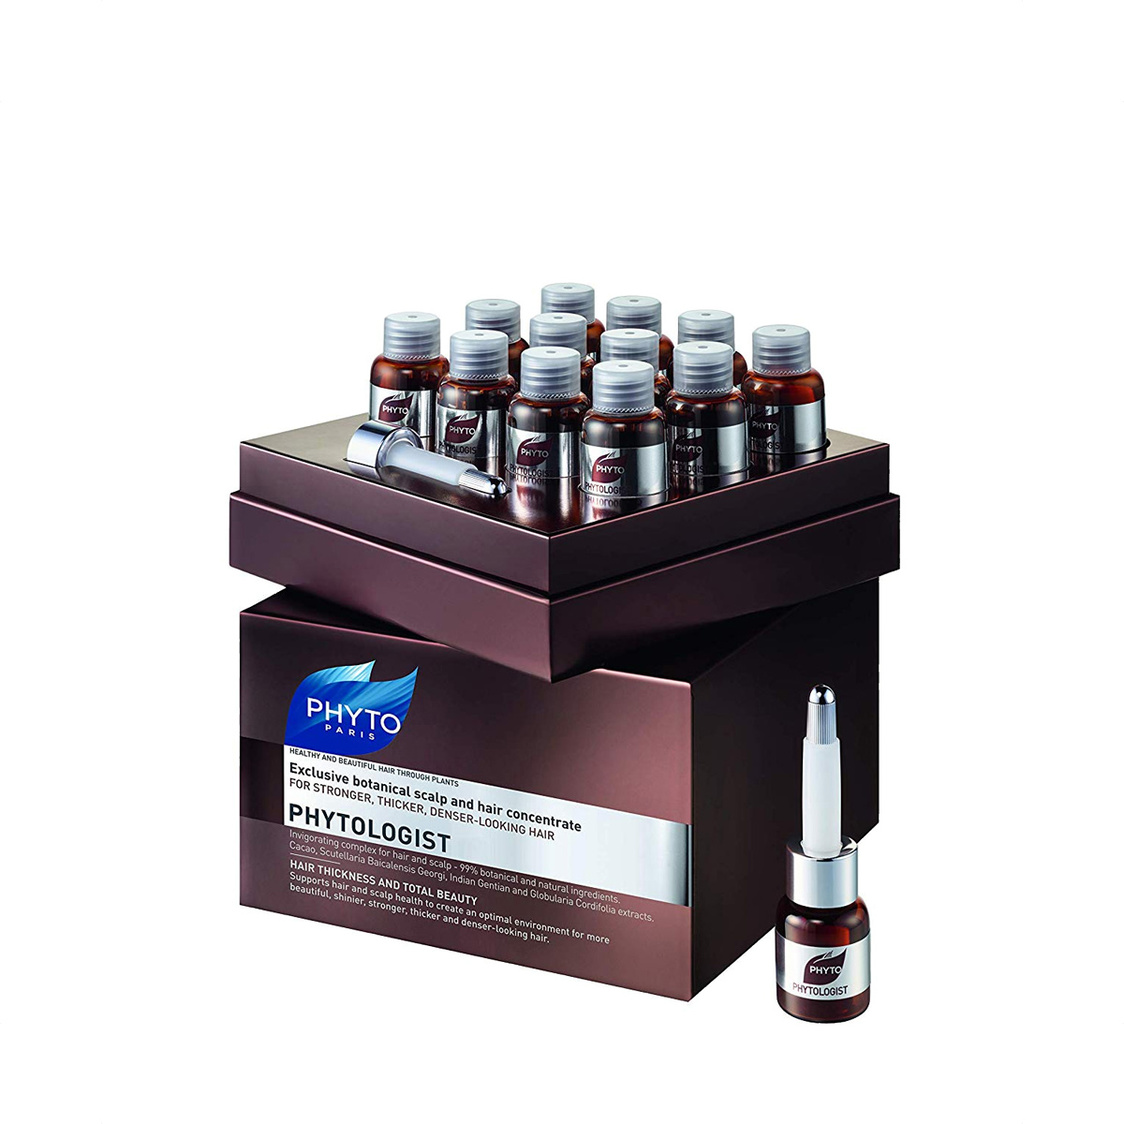 Phytologist 15 Absolute Anti-Hairloss Treatment P119